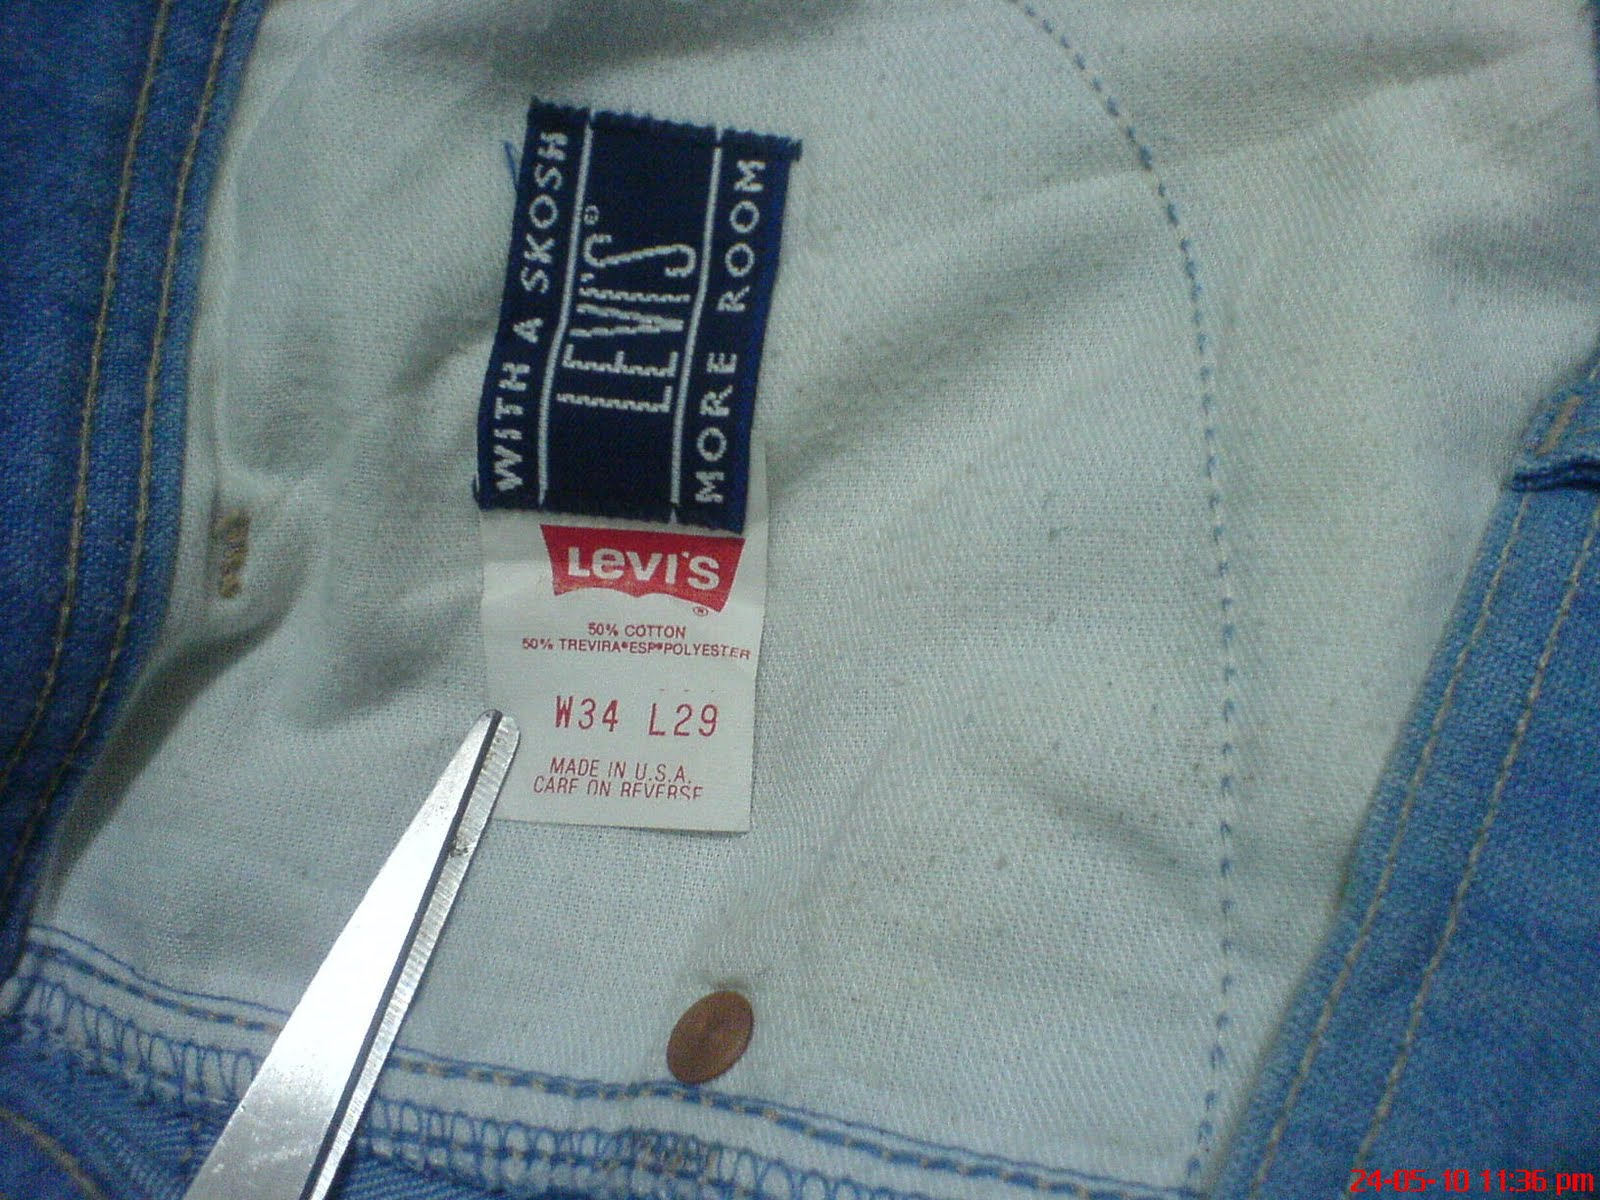 19 Awesome Levis Jeans 9 Digit Code